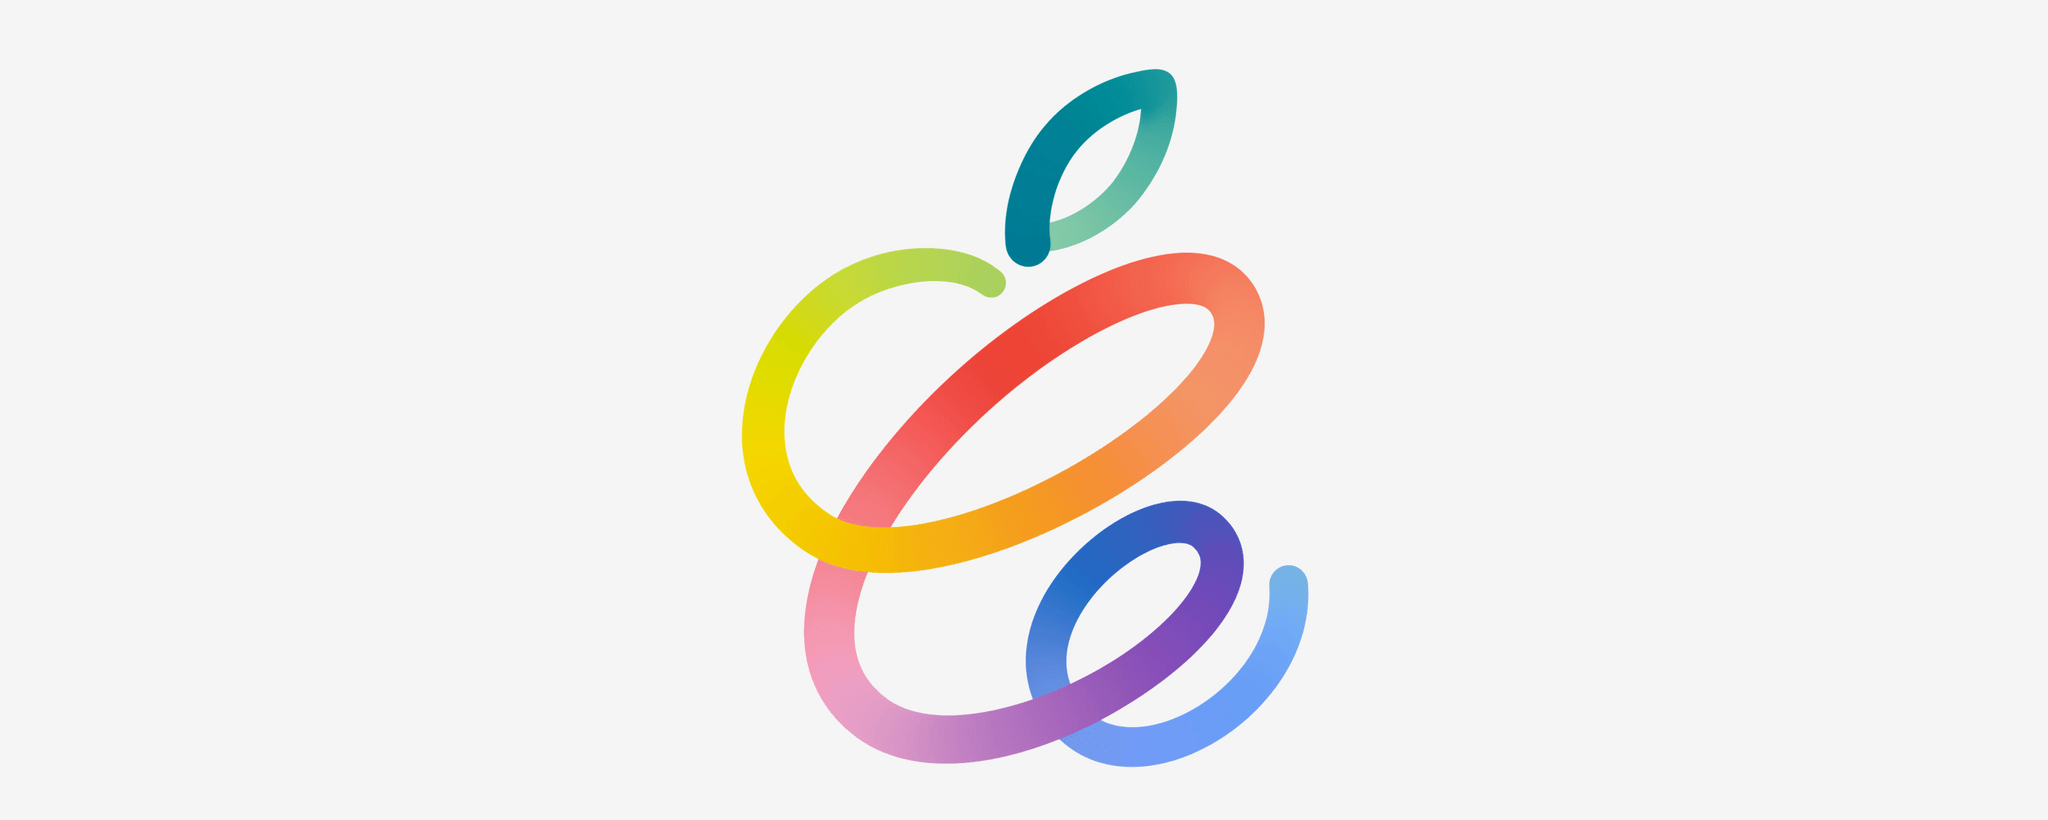 Apple's April 2021 Event: All the Little Things